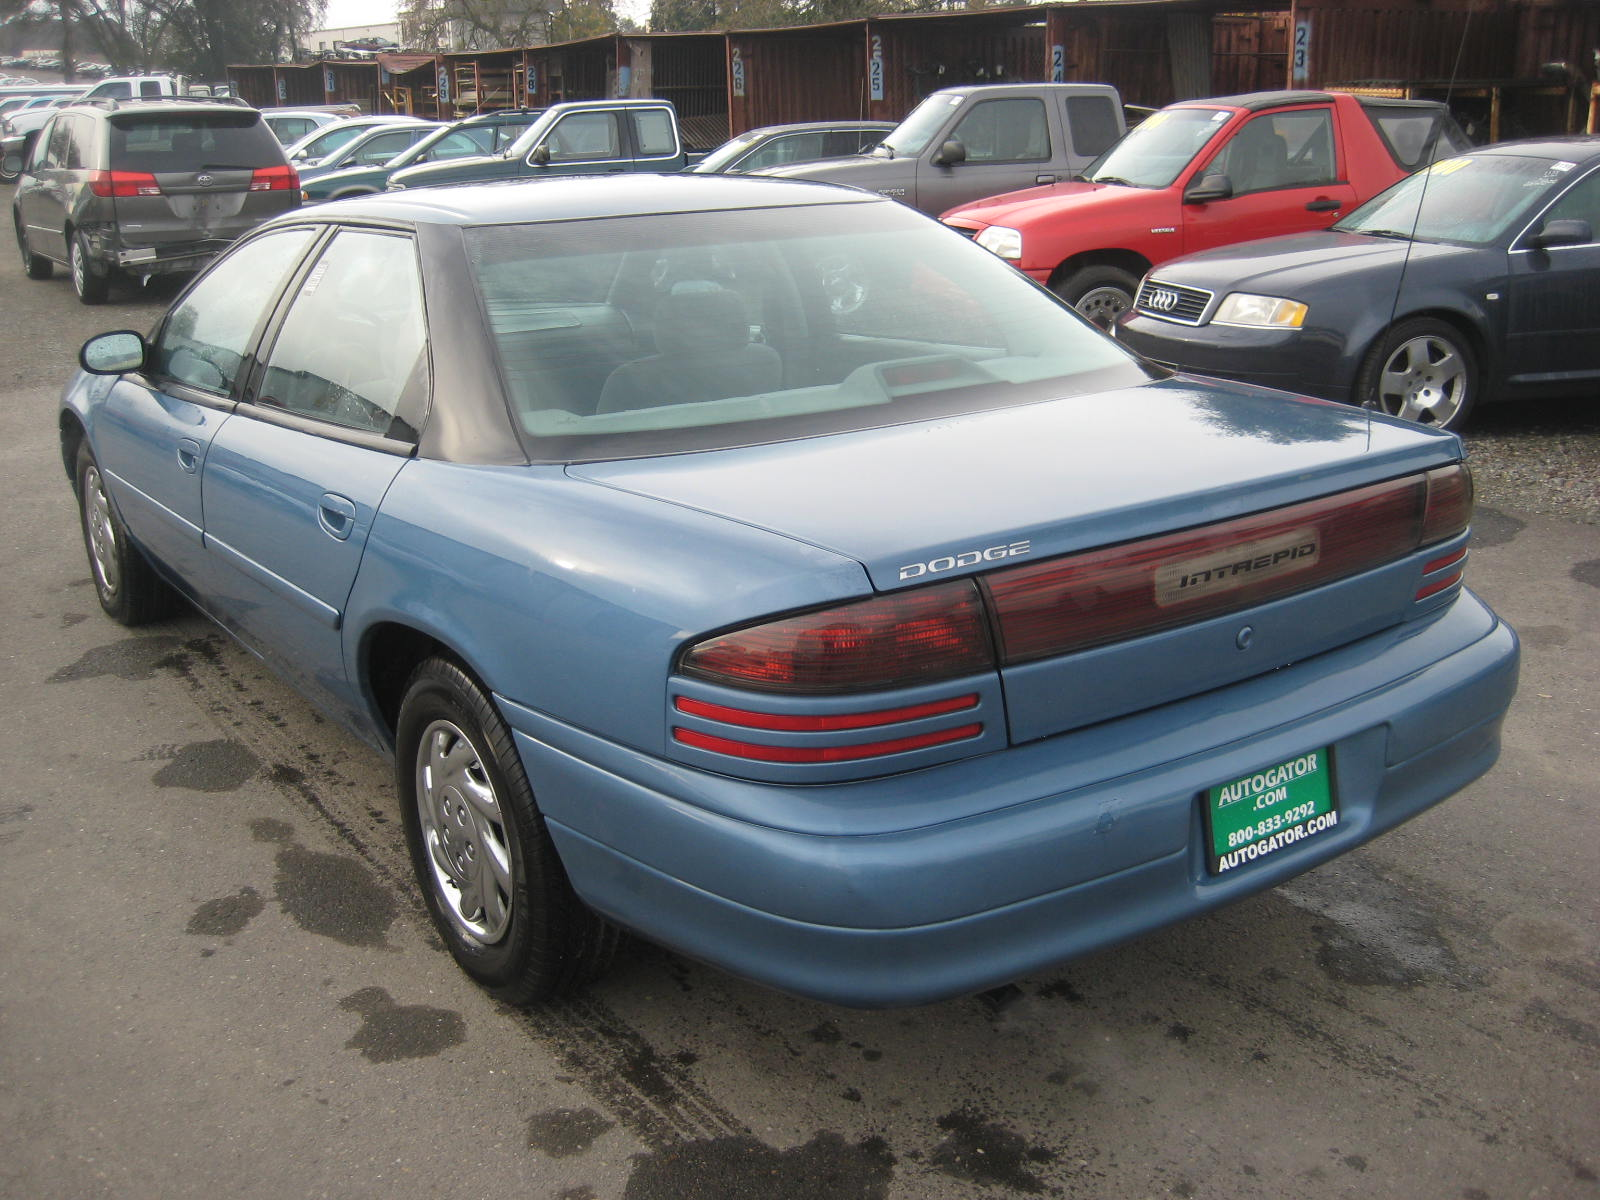 1995 Dodge Intrepid - Information And Photos